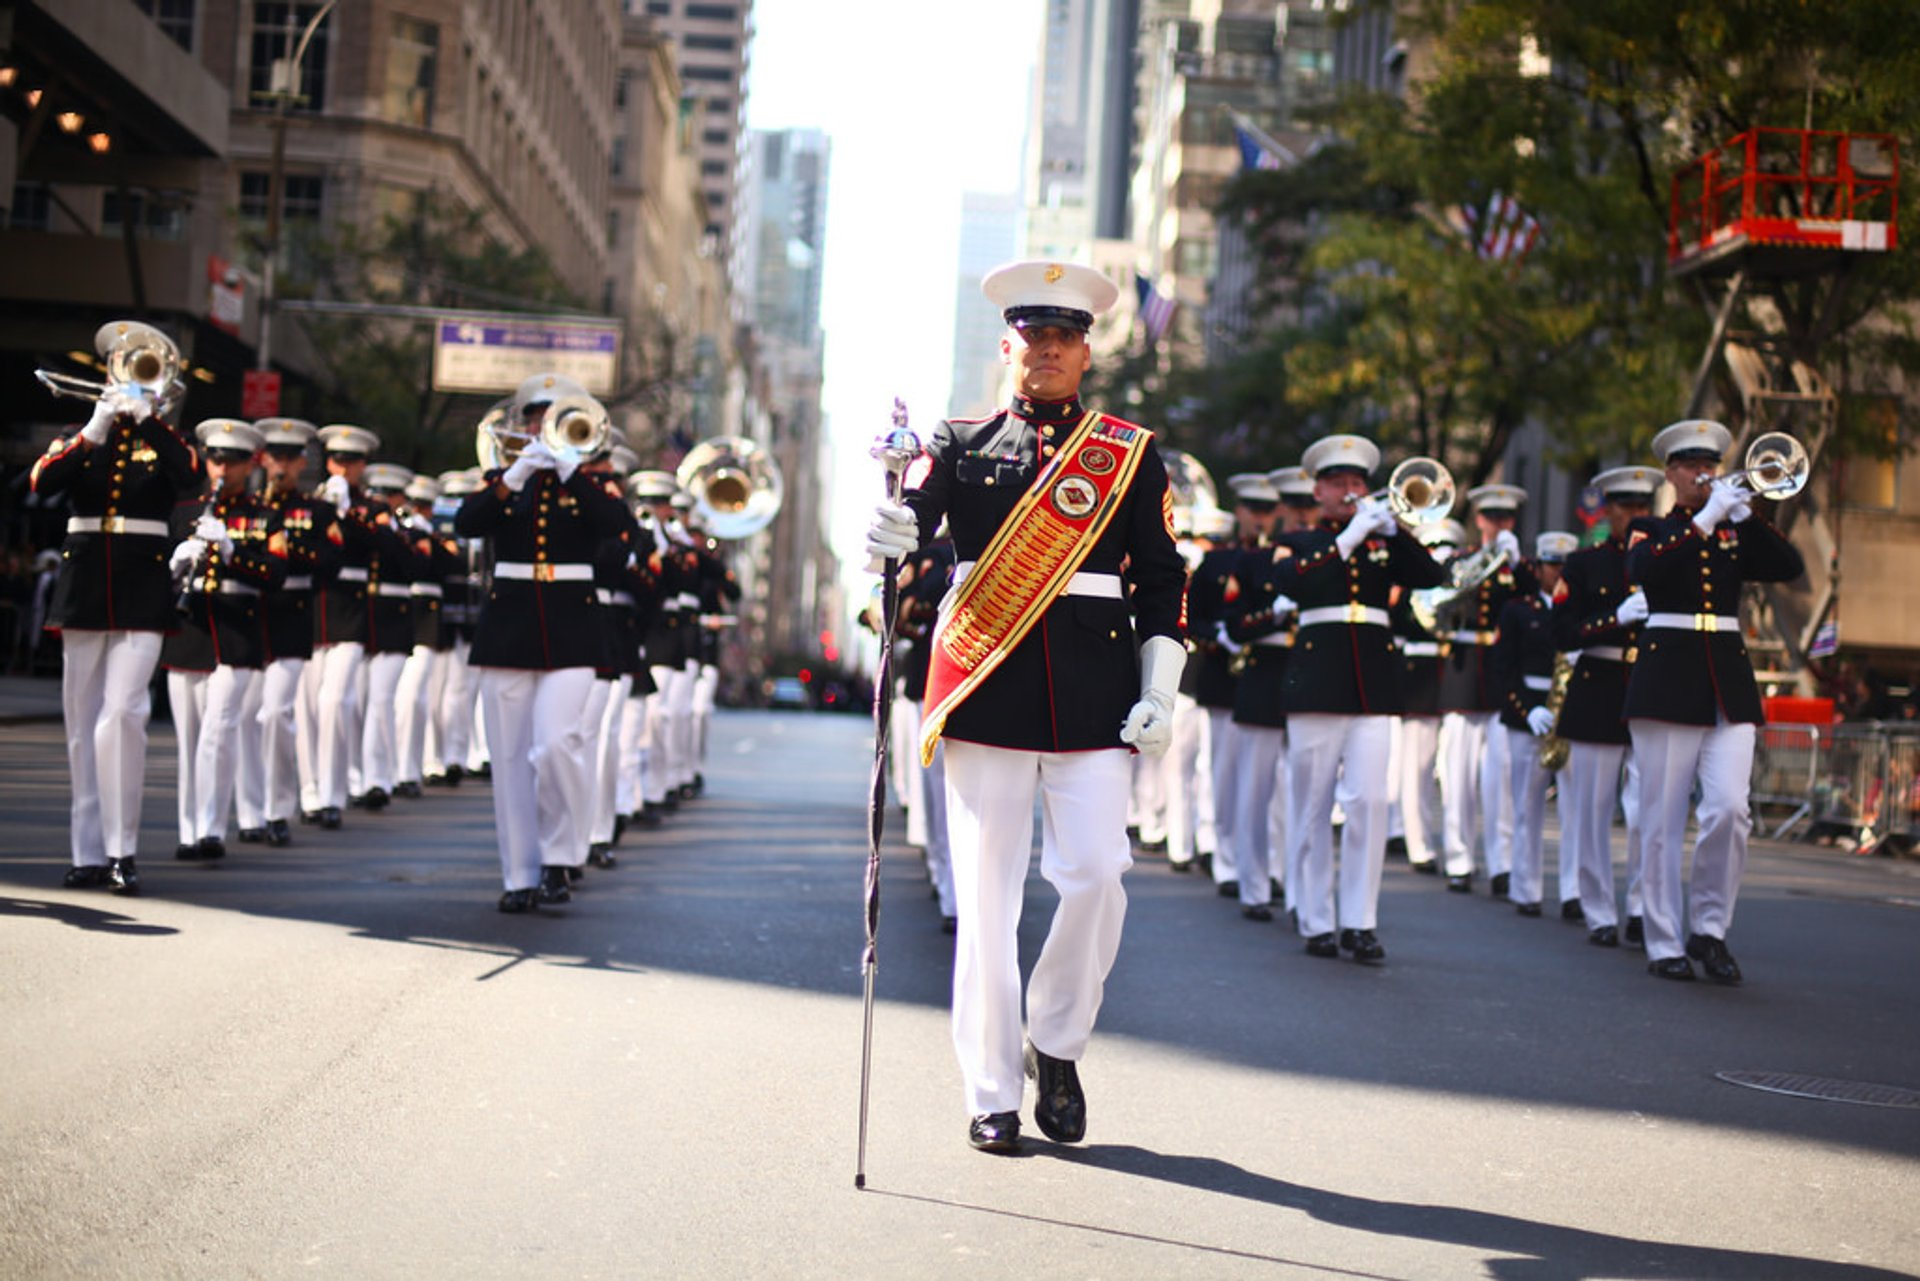 Columbus Day Parade in New York - Best Season 2019